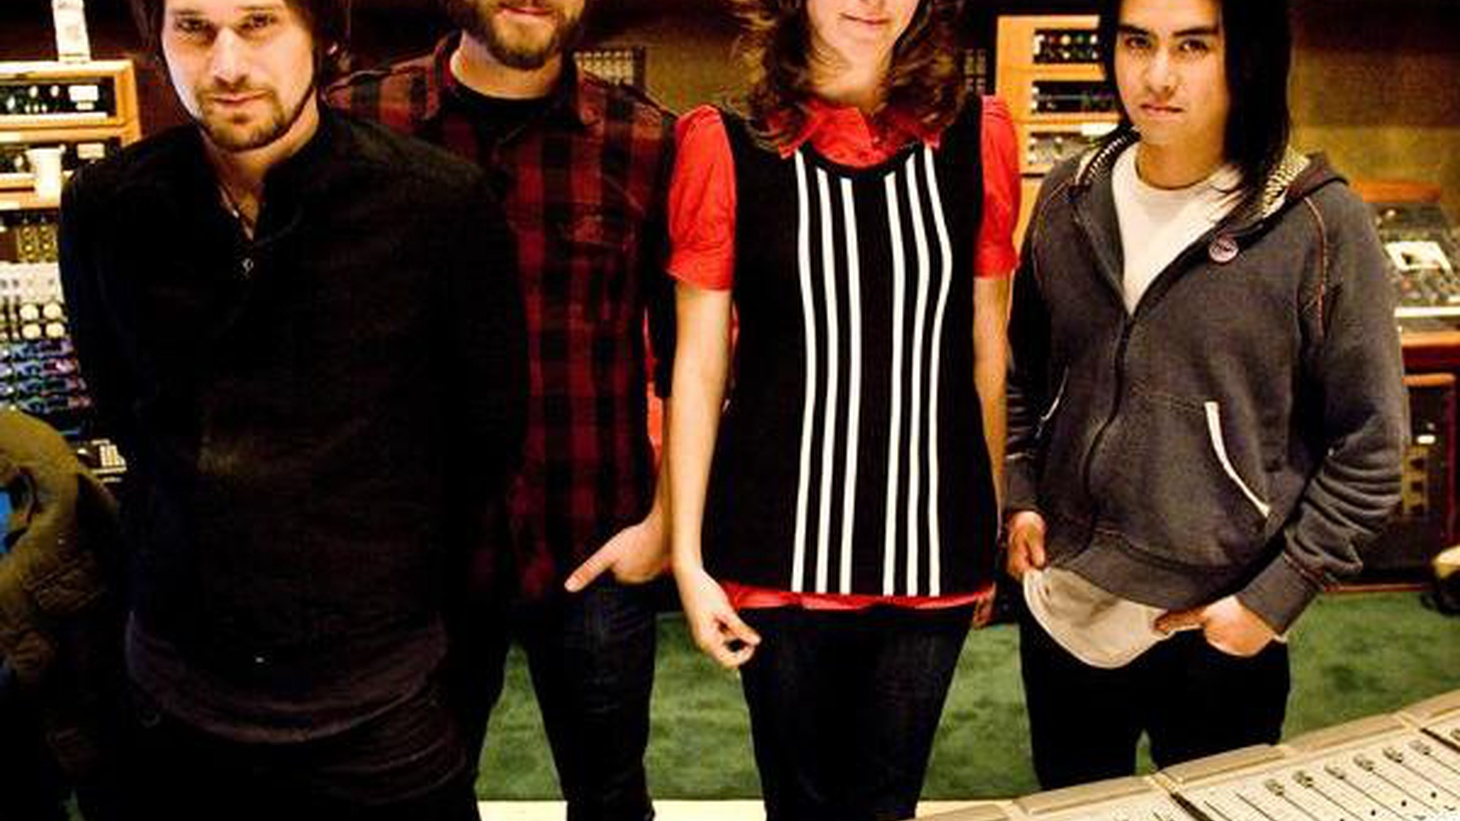 L.A. based Silversun Pickups explore songs from their new recording live on Morning Becomes Eclectic at 11:15am.